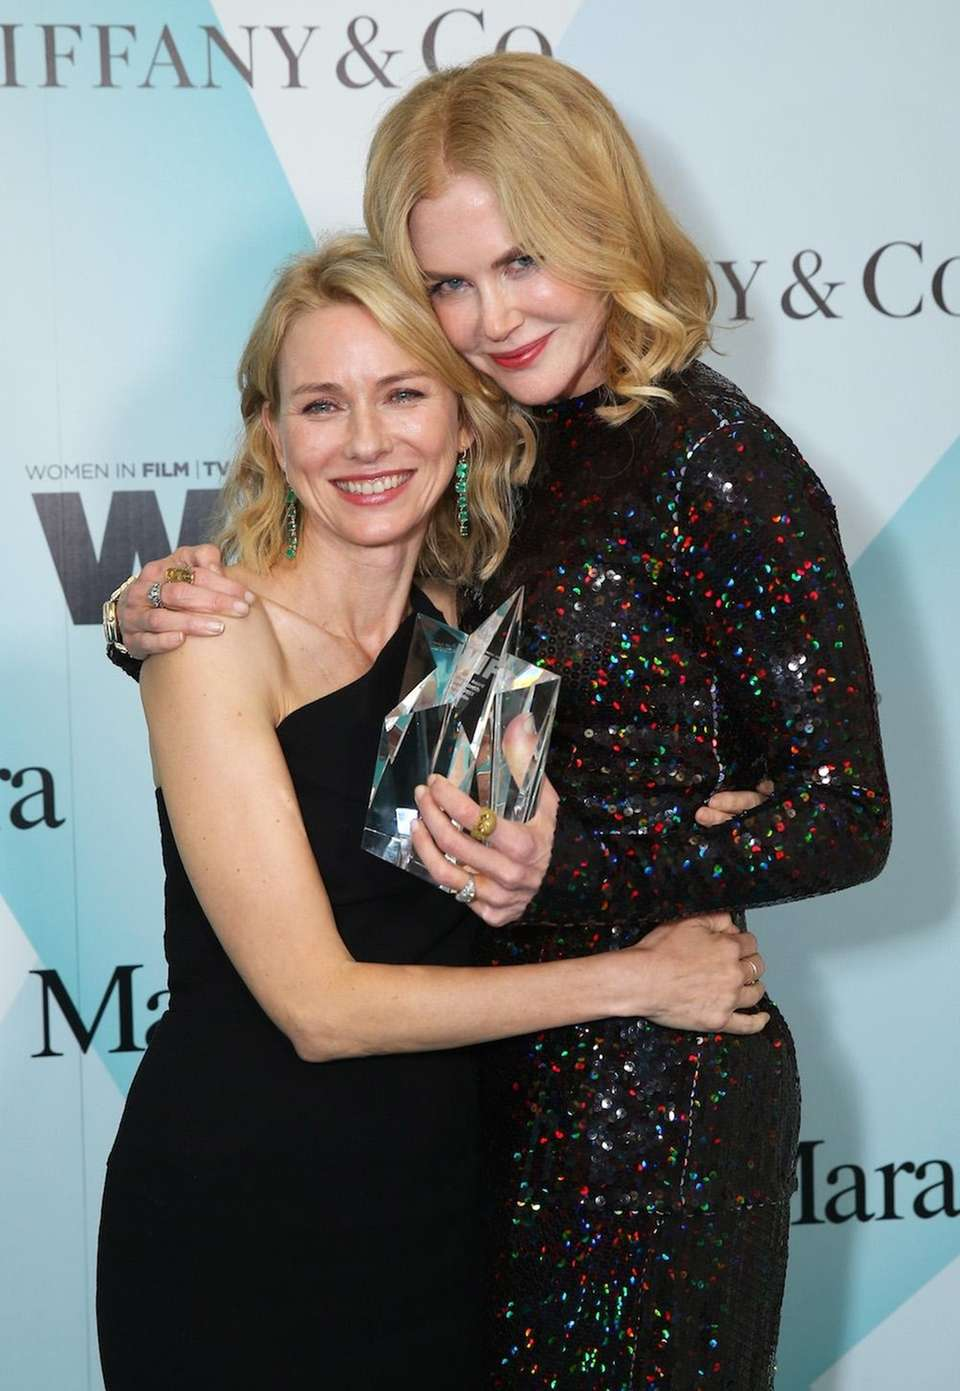 Australian actresses Naomi Watts and Nicole Kidman have